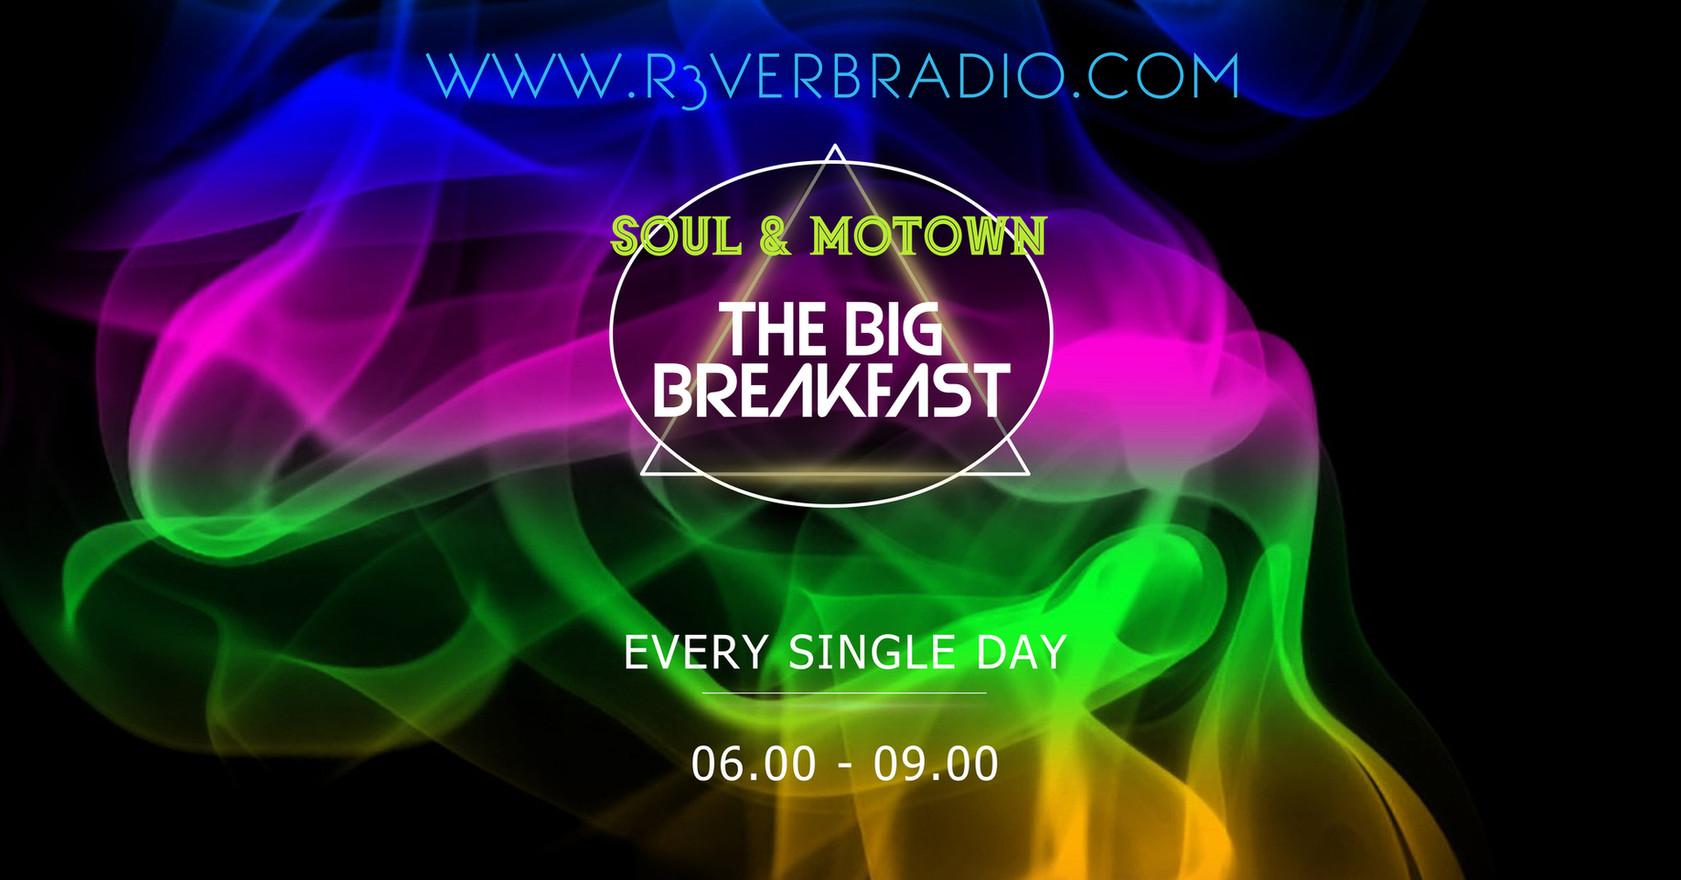 r3verb-the-big-breakfast-show.jpg